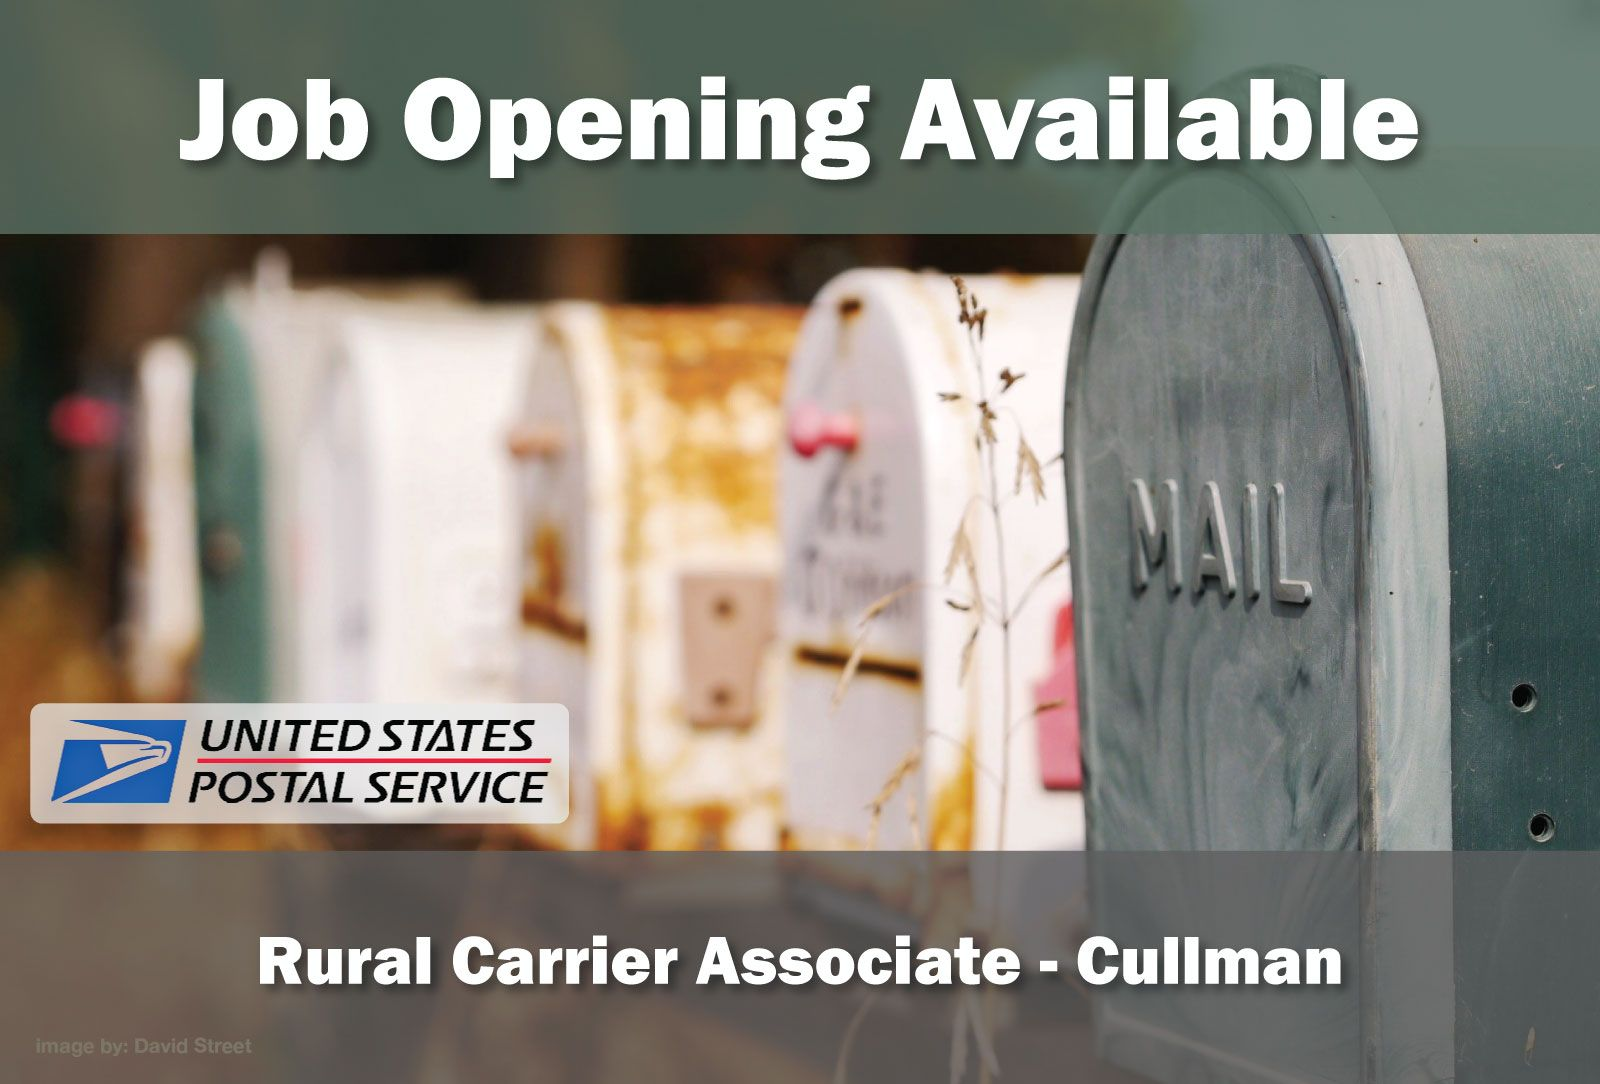 JOB OPENING AVAILABLE United State Post Office Rural